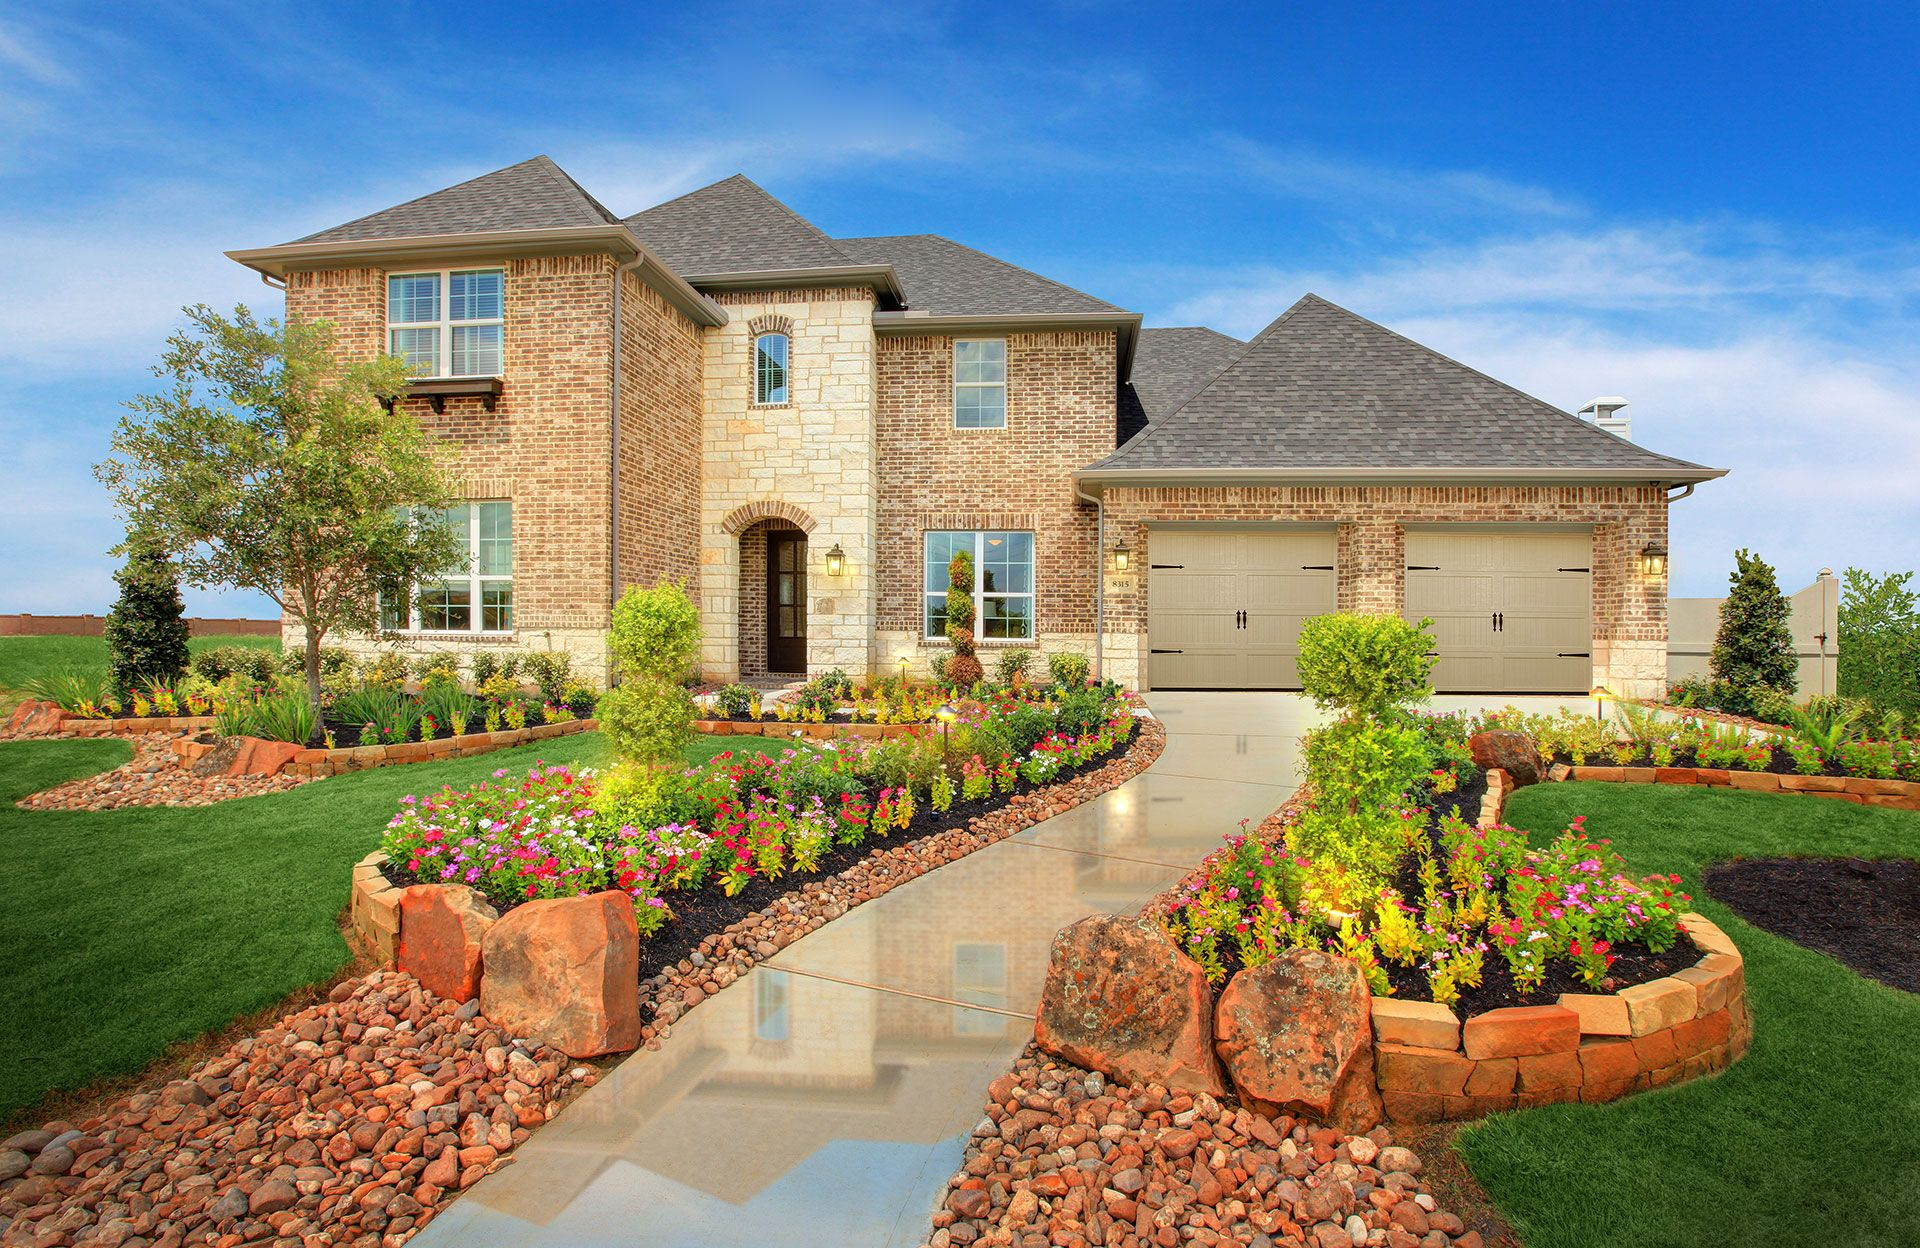 Single Family for Sale at Bronson 339 Summer Cresent Drive Rosenberg, Texas 77469 United States